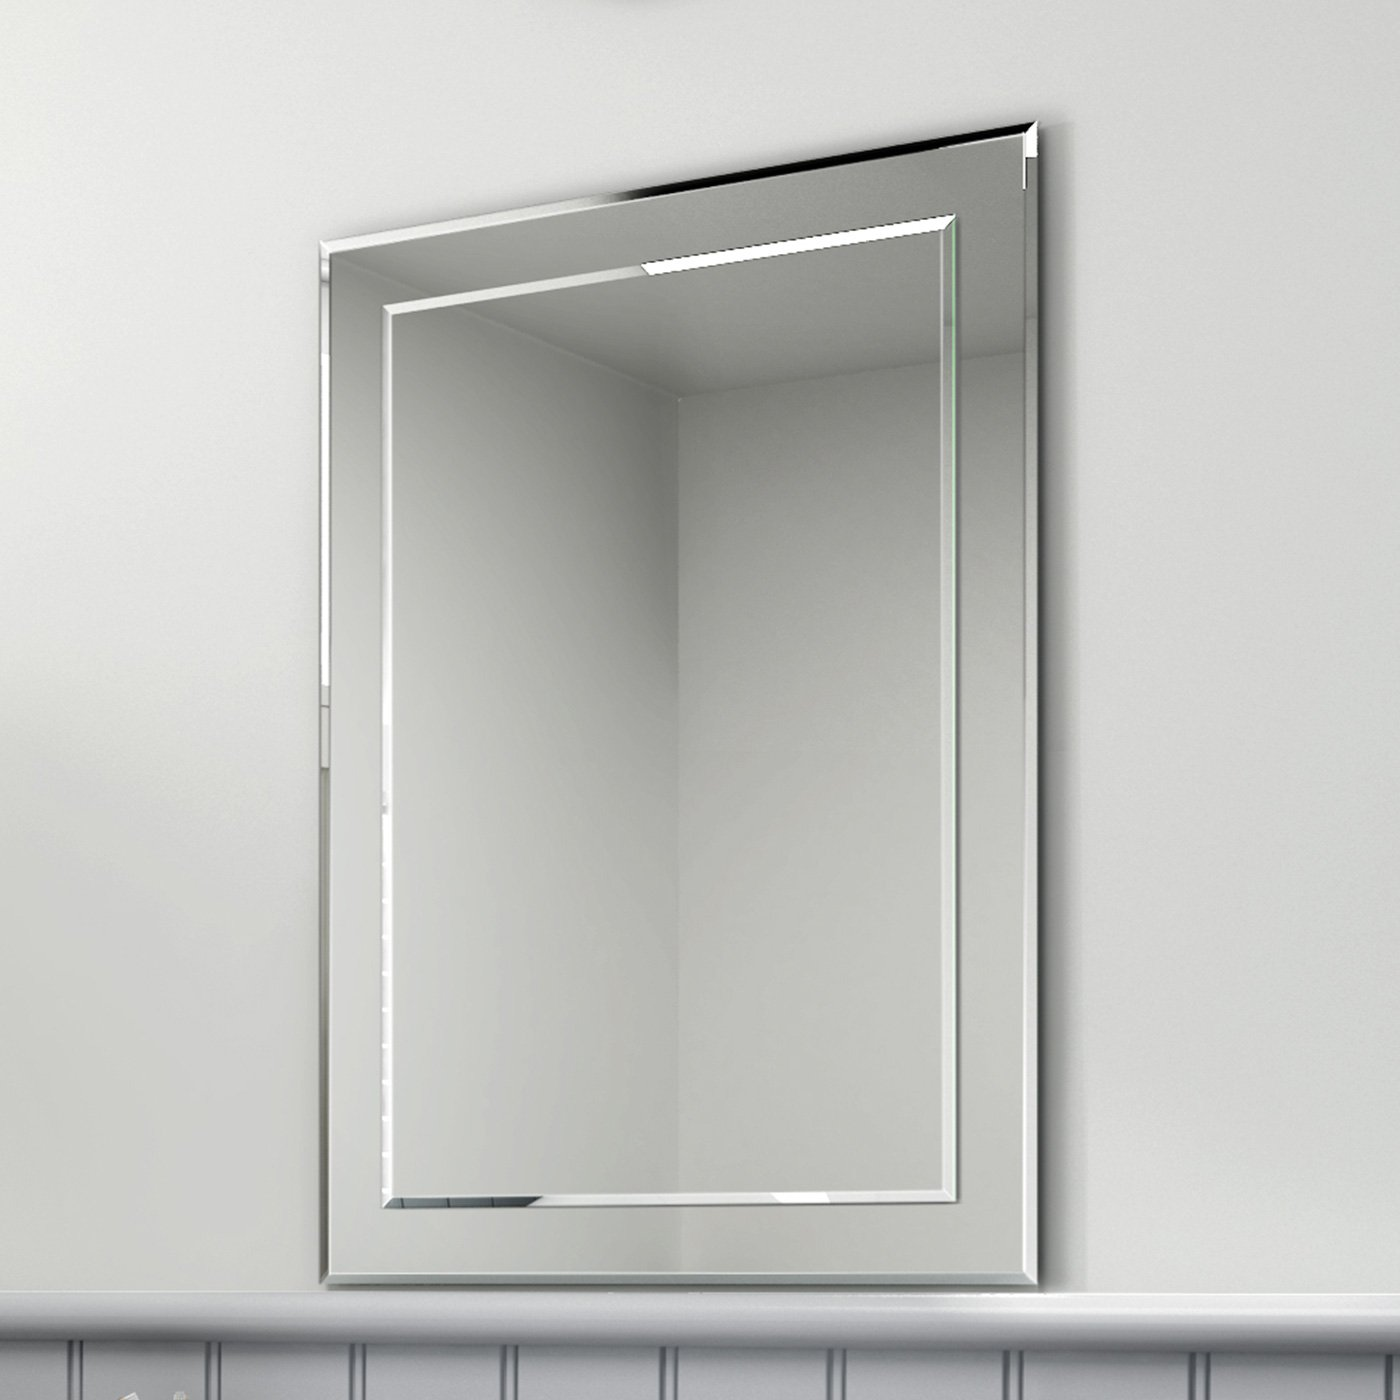 500 x 700 mm Rectangular Bevelled Designer Bathroom Wall Mirror Bathroom Mirrors MC148 iBathUK